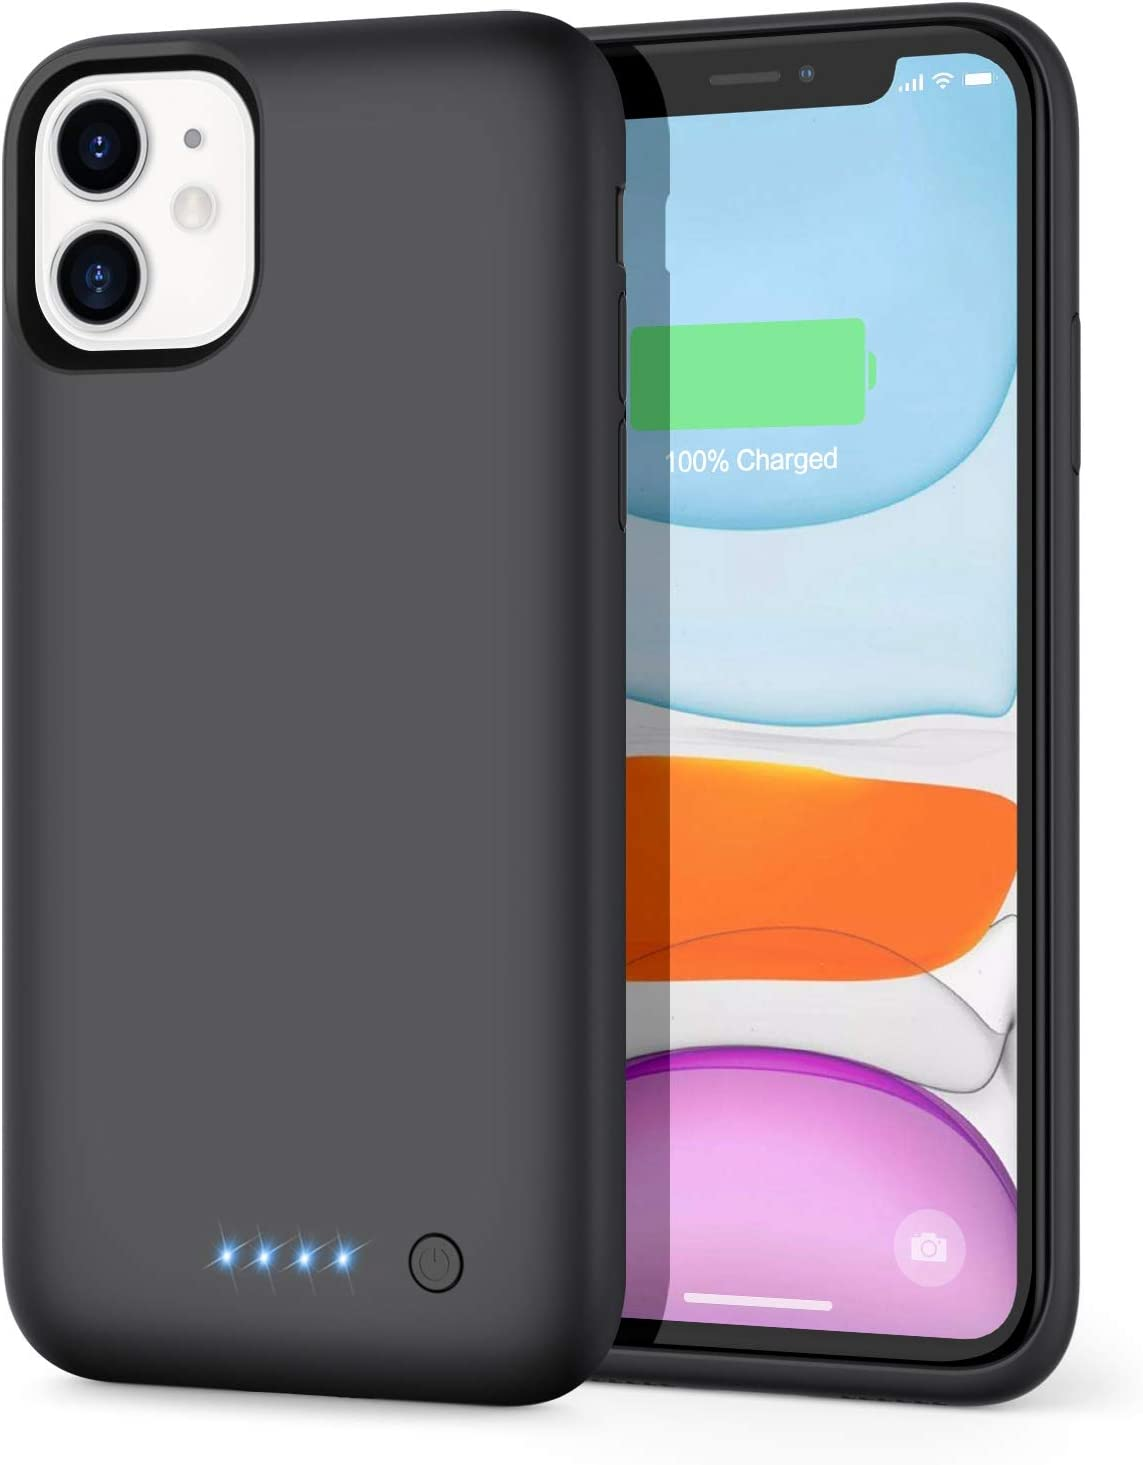 OFFicial Yacikos Battery Fashionable Case for iPhone 11 6800mAh C Protective Protable